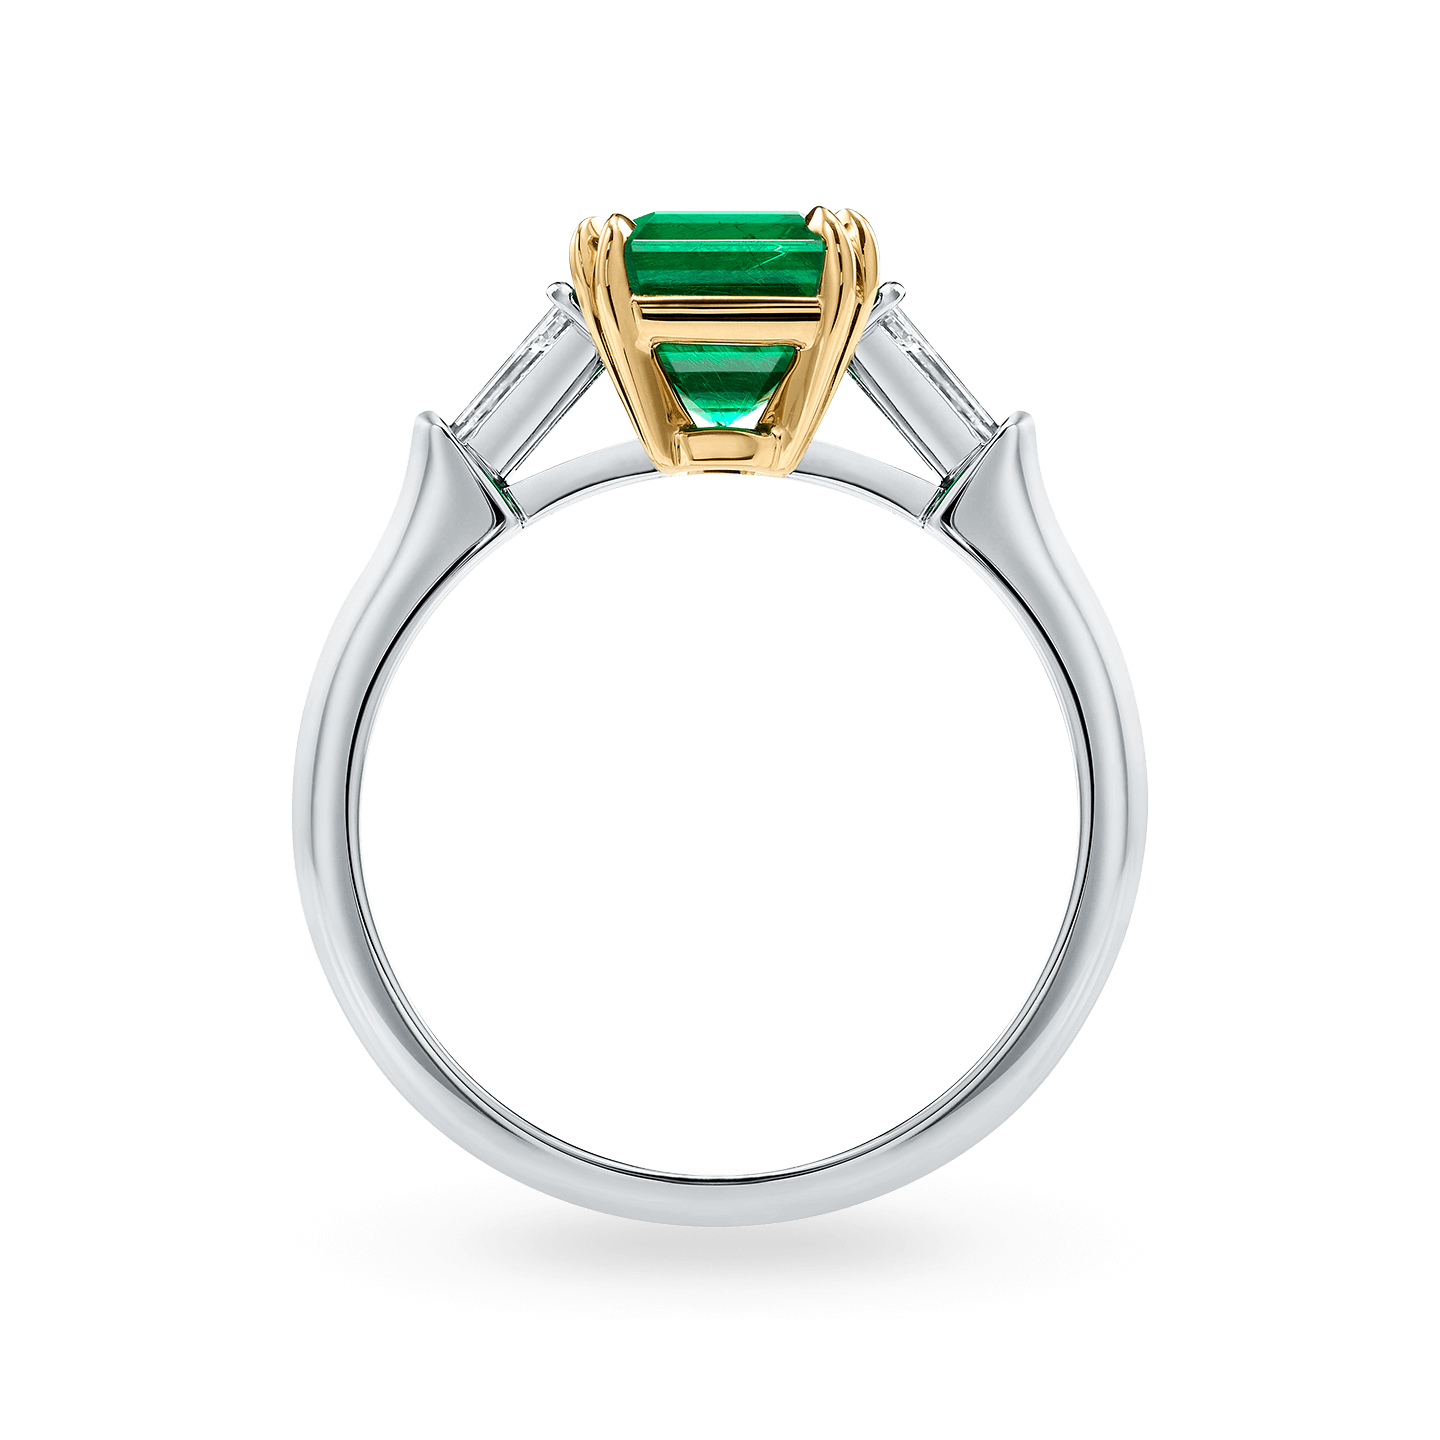 Classic Winston Emerald-Cut Emerald Ring, Product Image 2